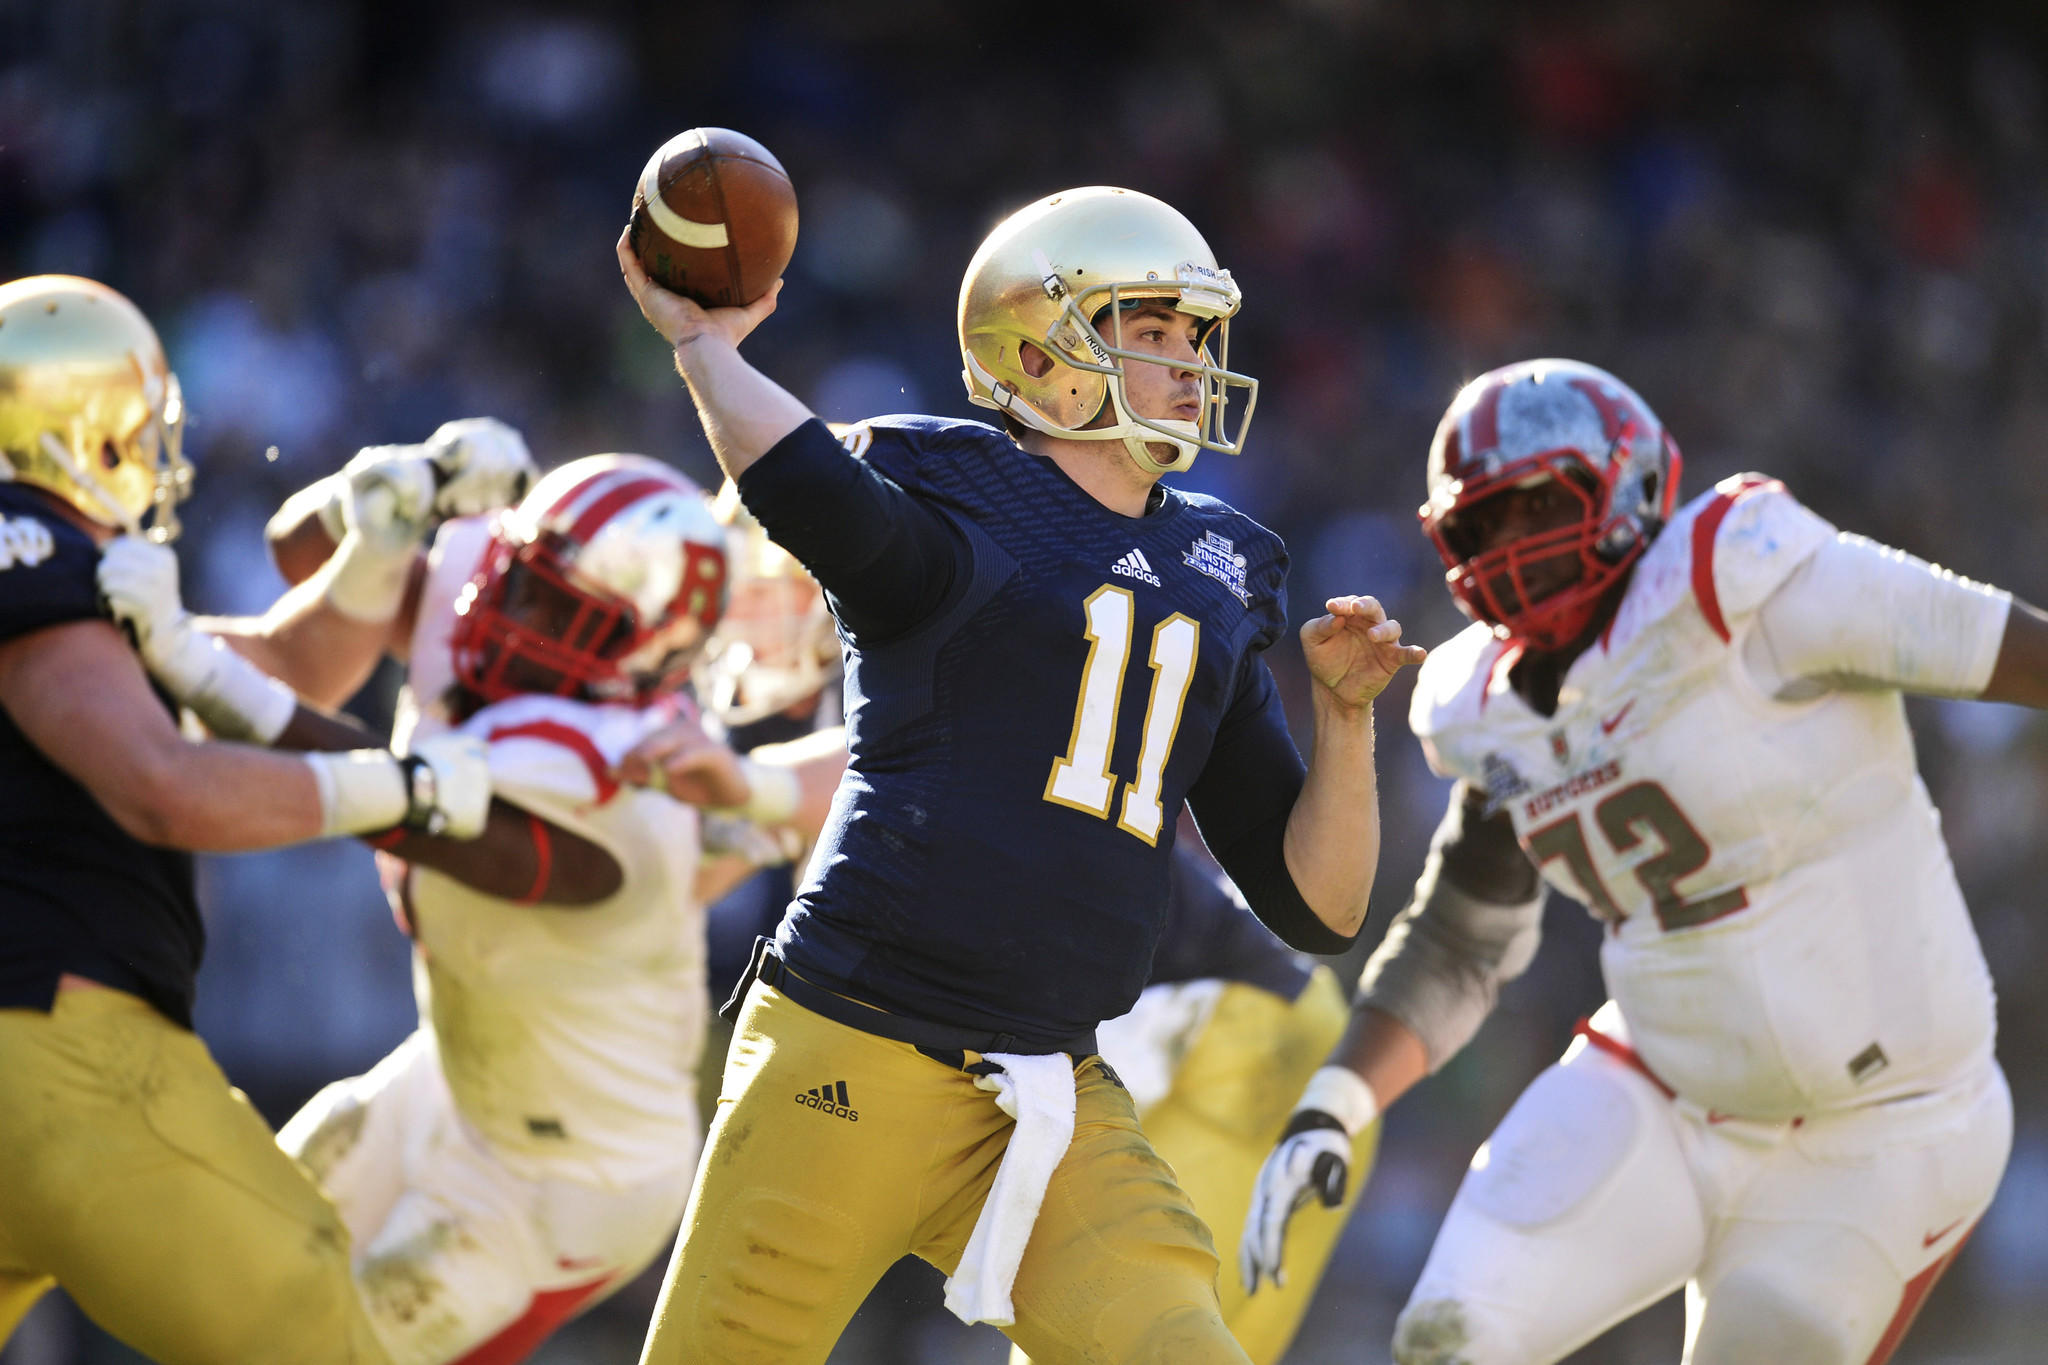 Notre Dame Fighting Irish quarterback Tommy Rees (11) throws a pass against the Rutgers Scarlet Knights during the first half of the Pinstripe Bowl at Yankees Stadium.